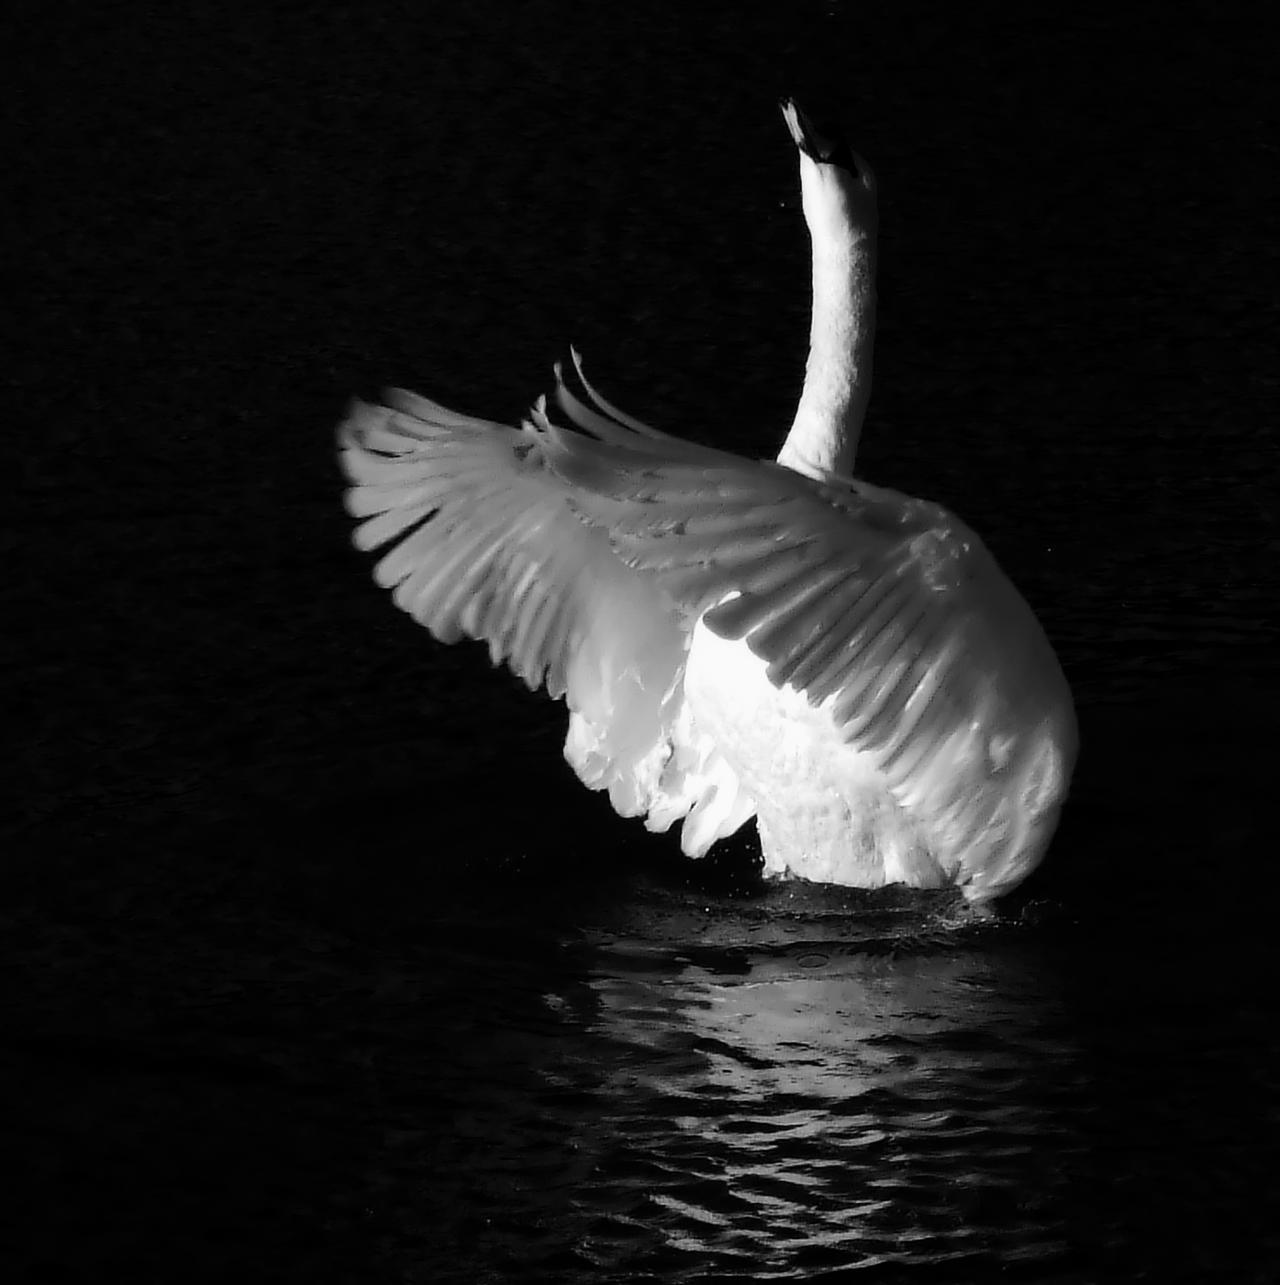 Swan Song by Bazz-photography on DeviantArt